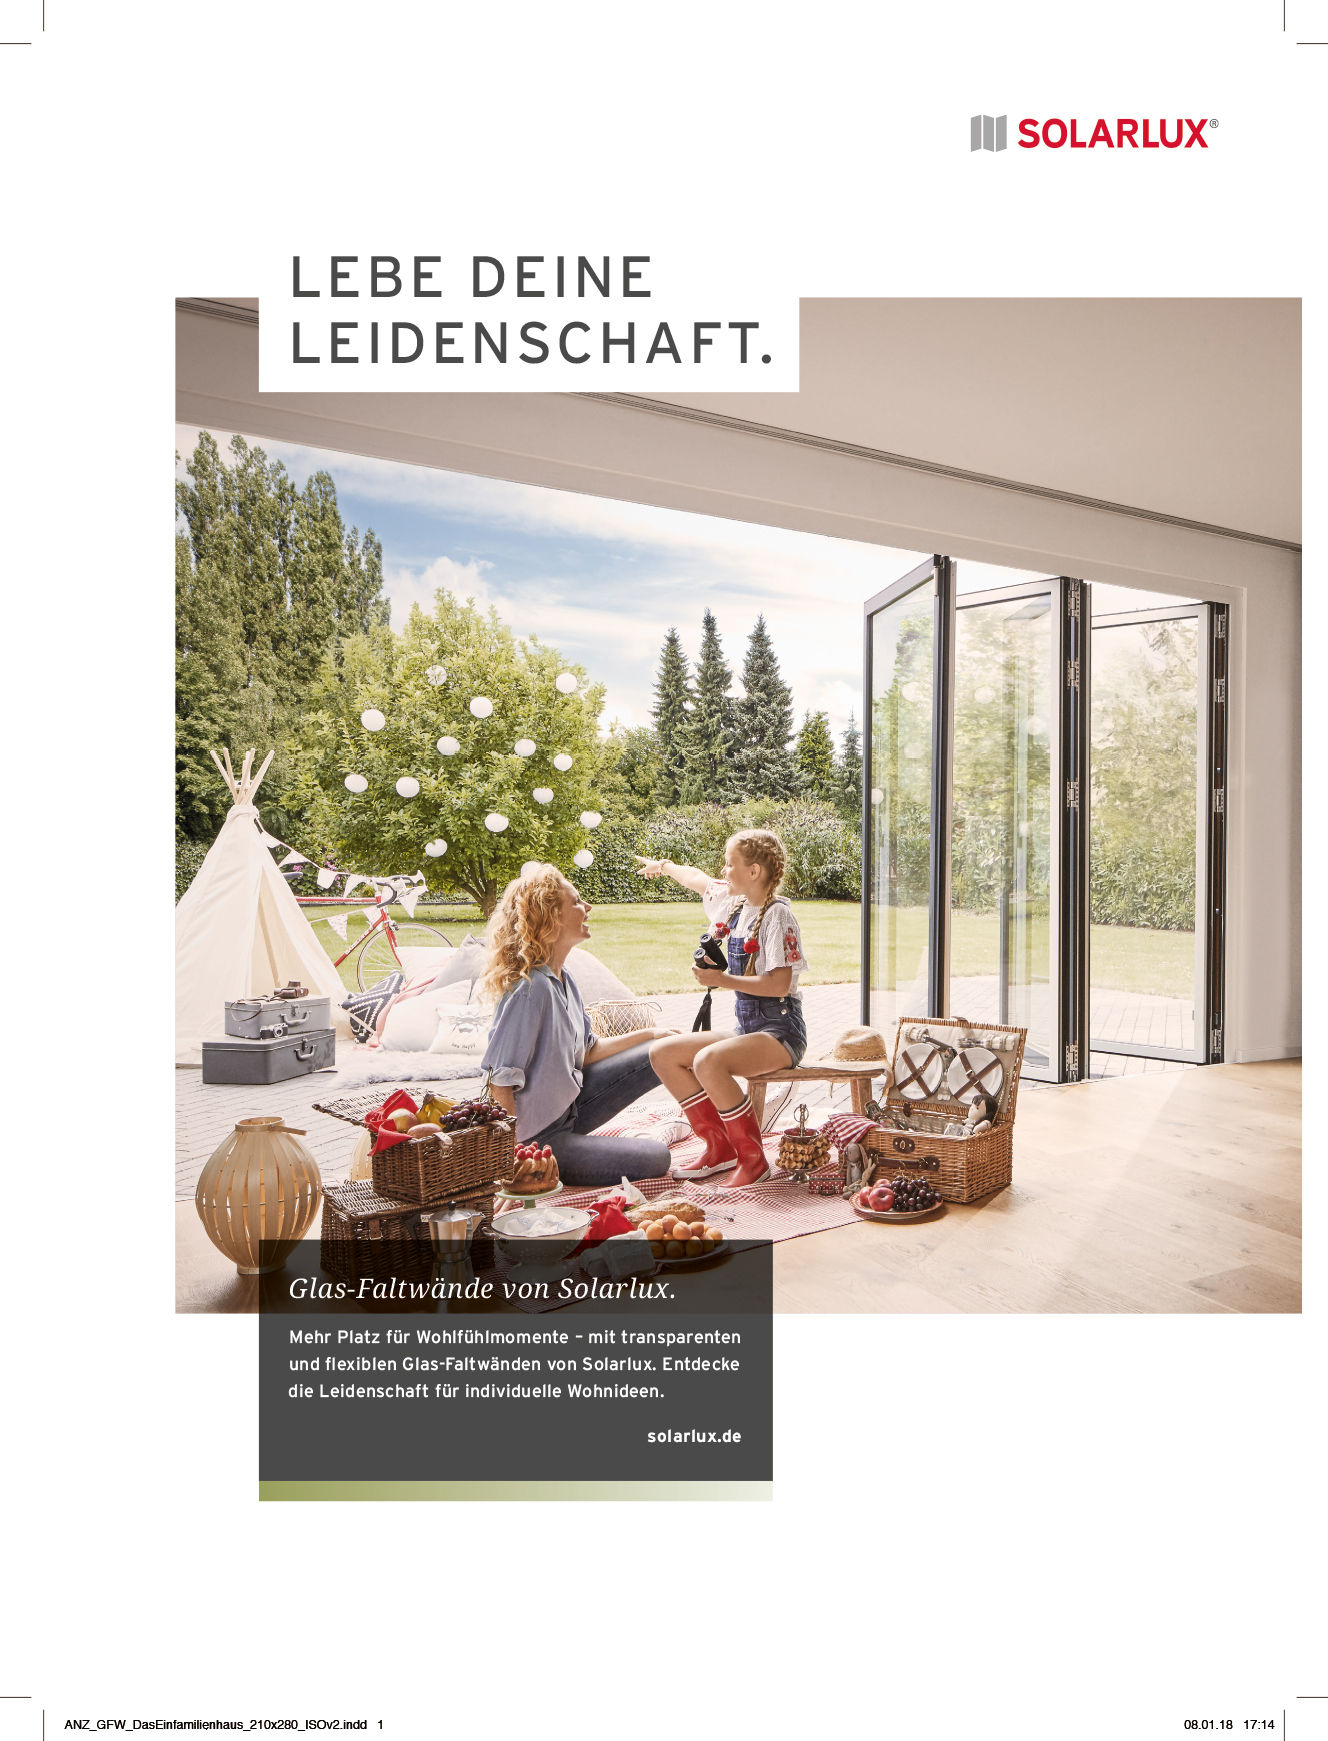 D. & A. Plattner GBR / fashion-styling and interior-design for Solarlux GmbH campaign: Lebe deine Leidenschaft.